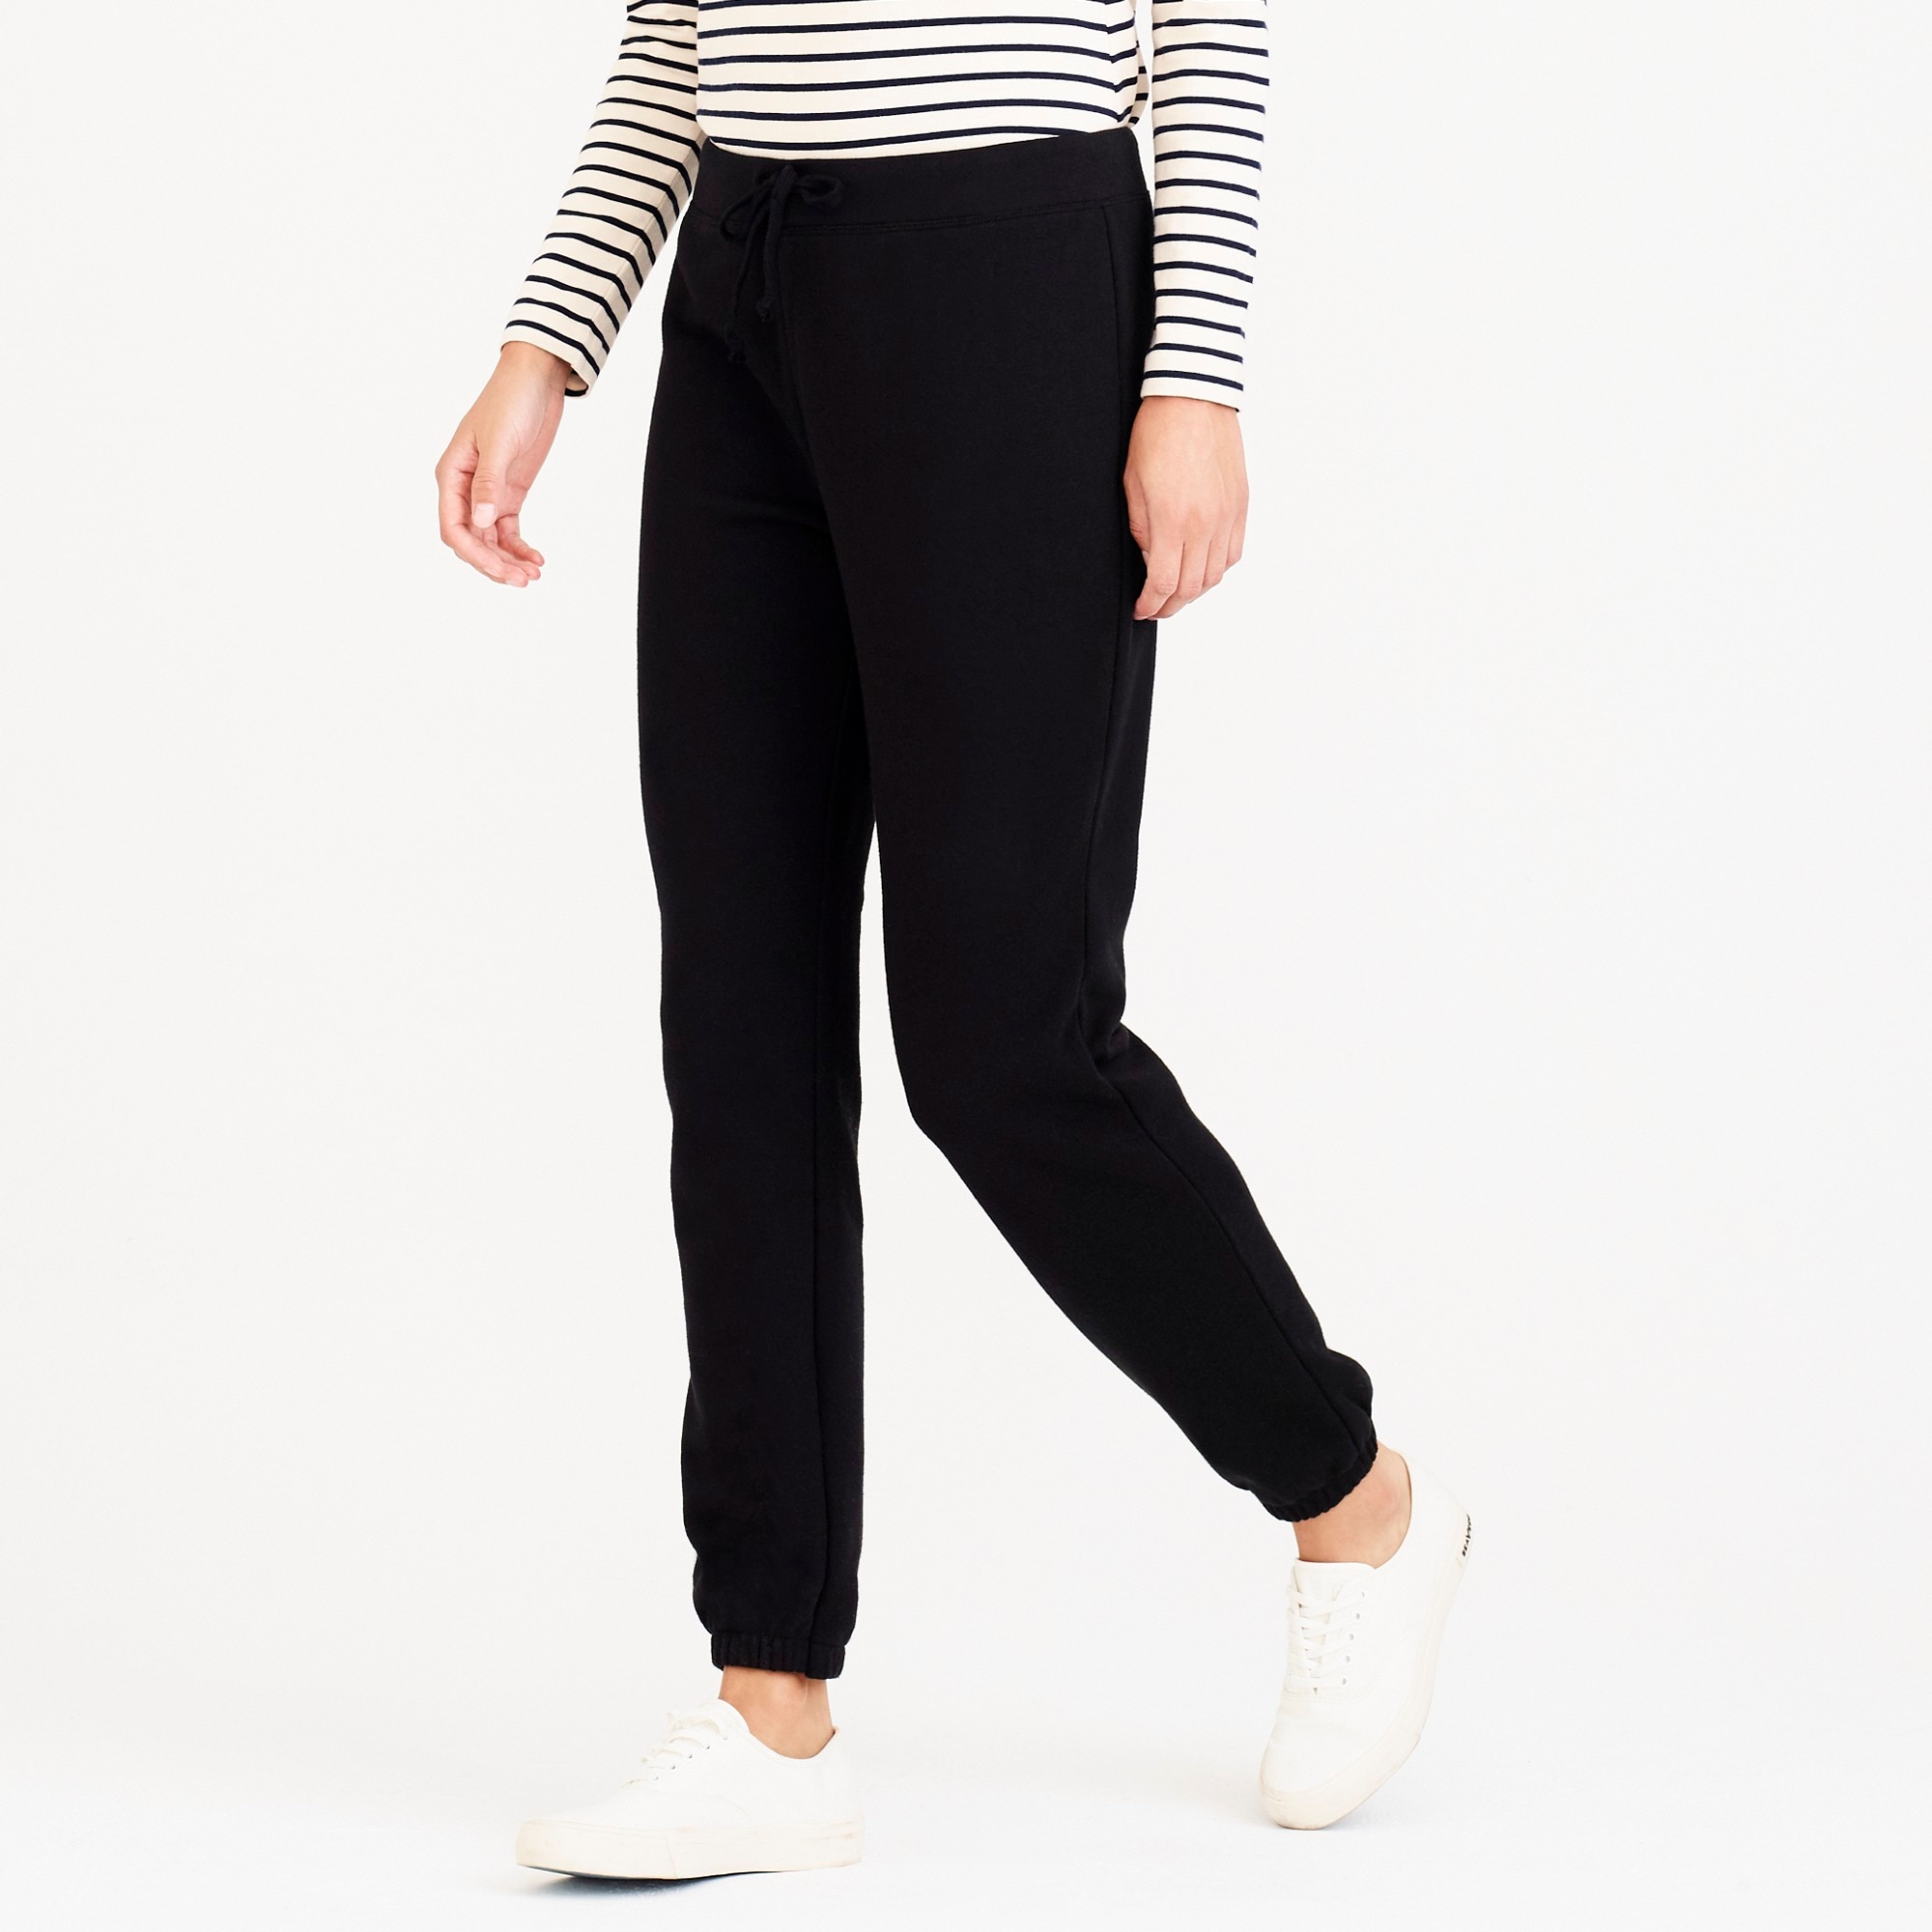 drapey sweatpant : factorywomen knit pants & leggings